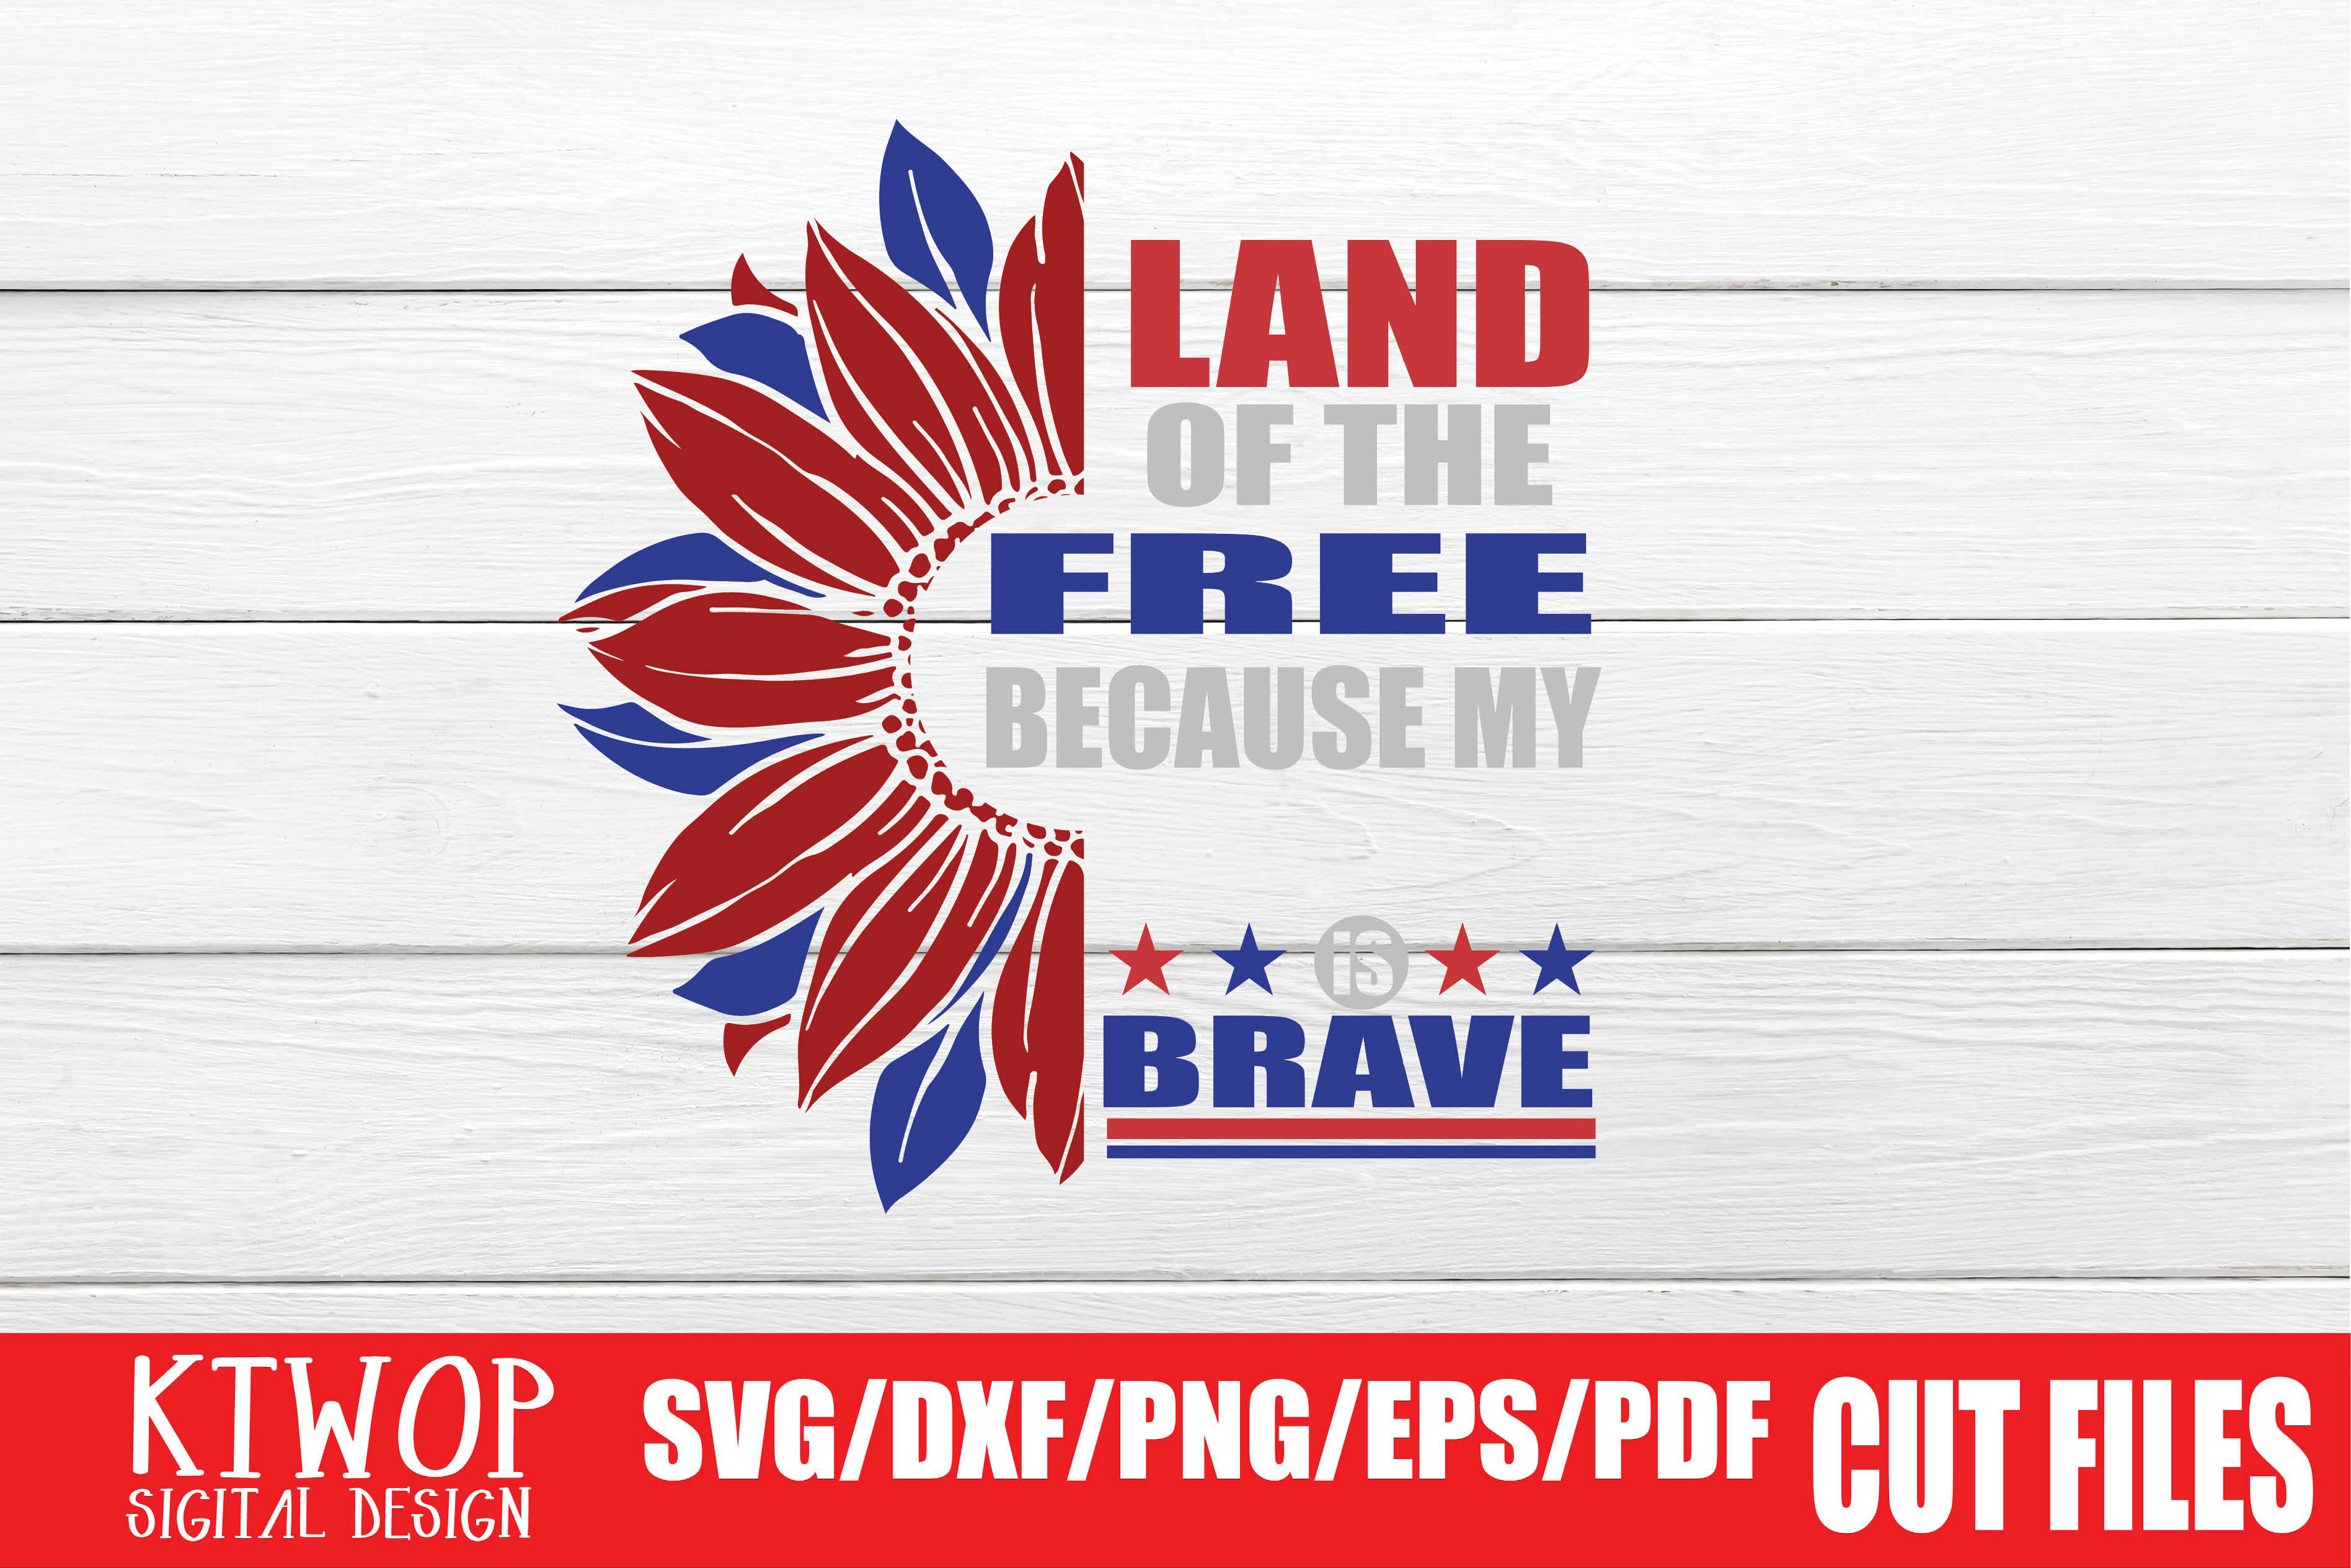 Land Of The Free Because Of The Brave Graphic By Ktwop